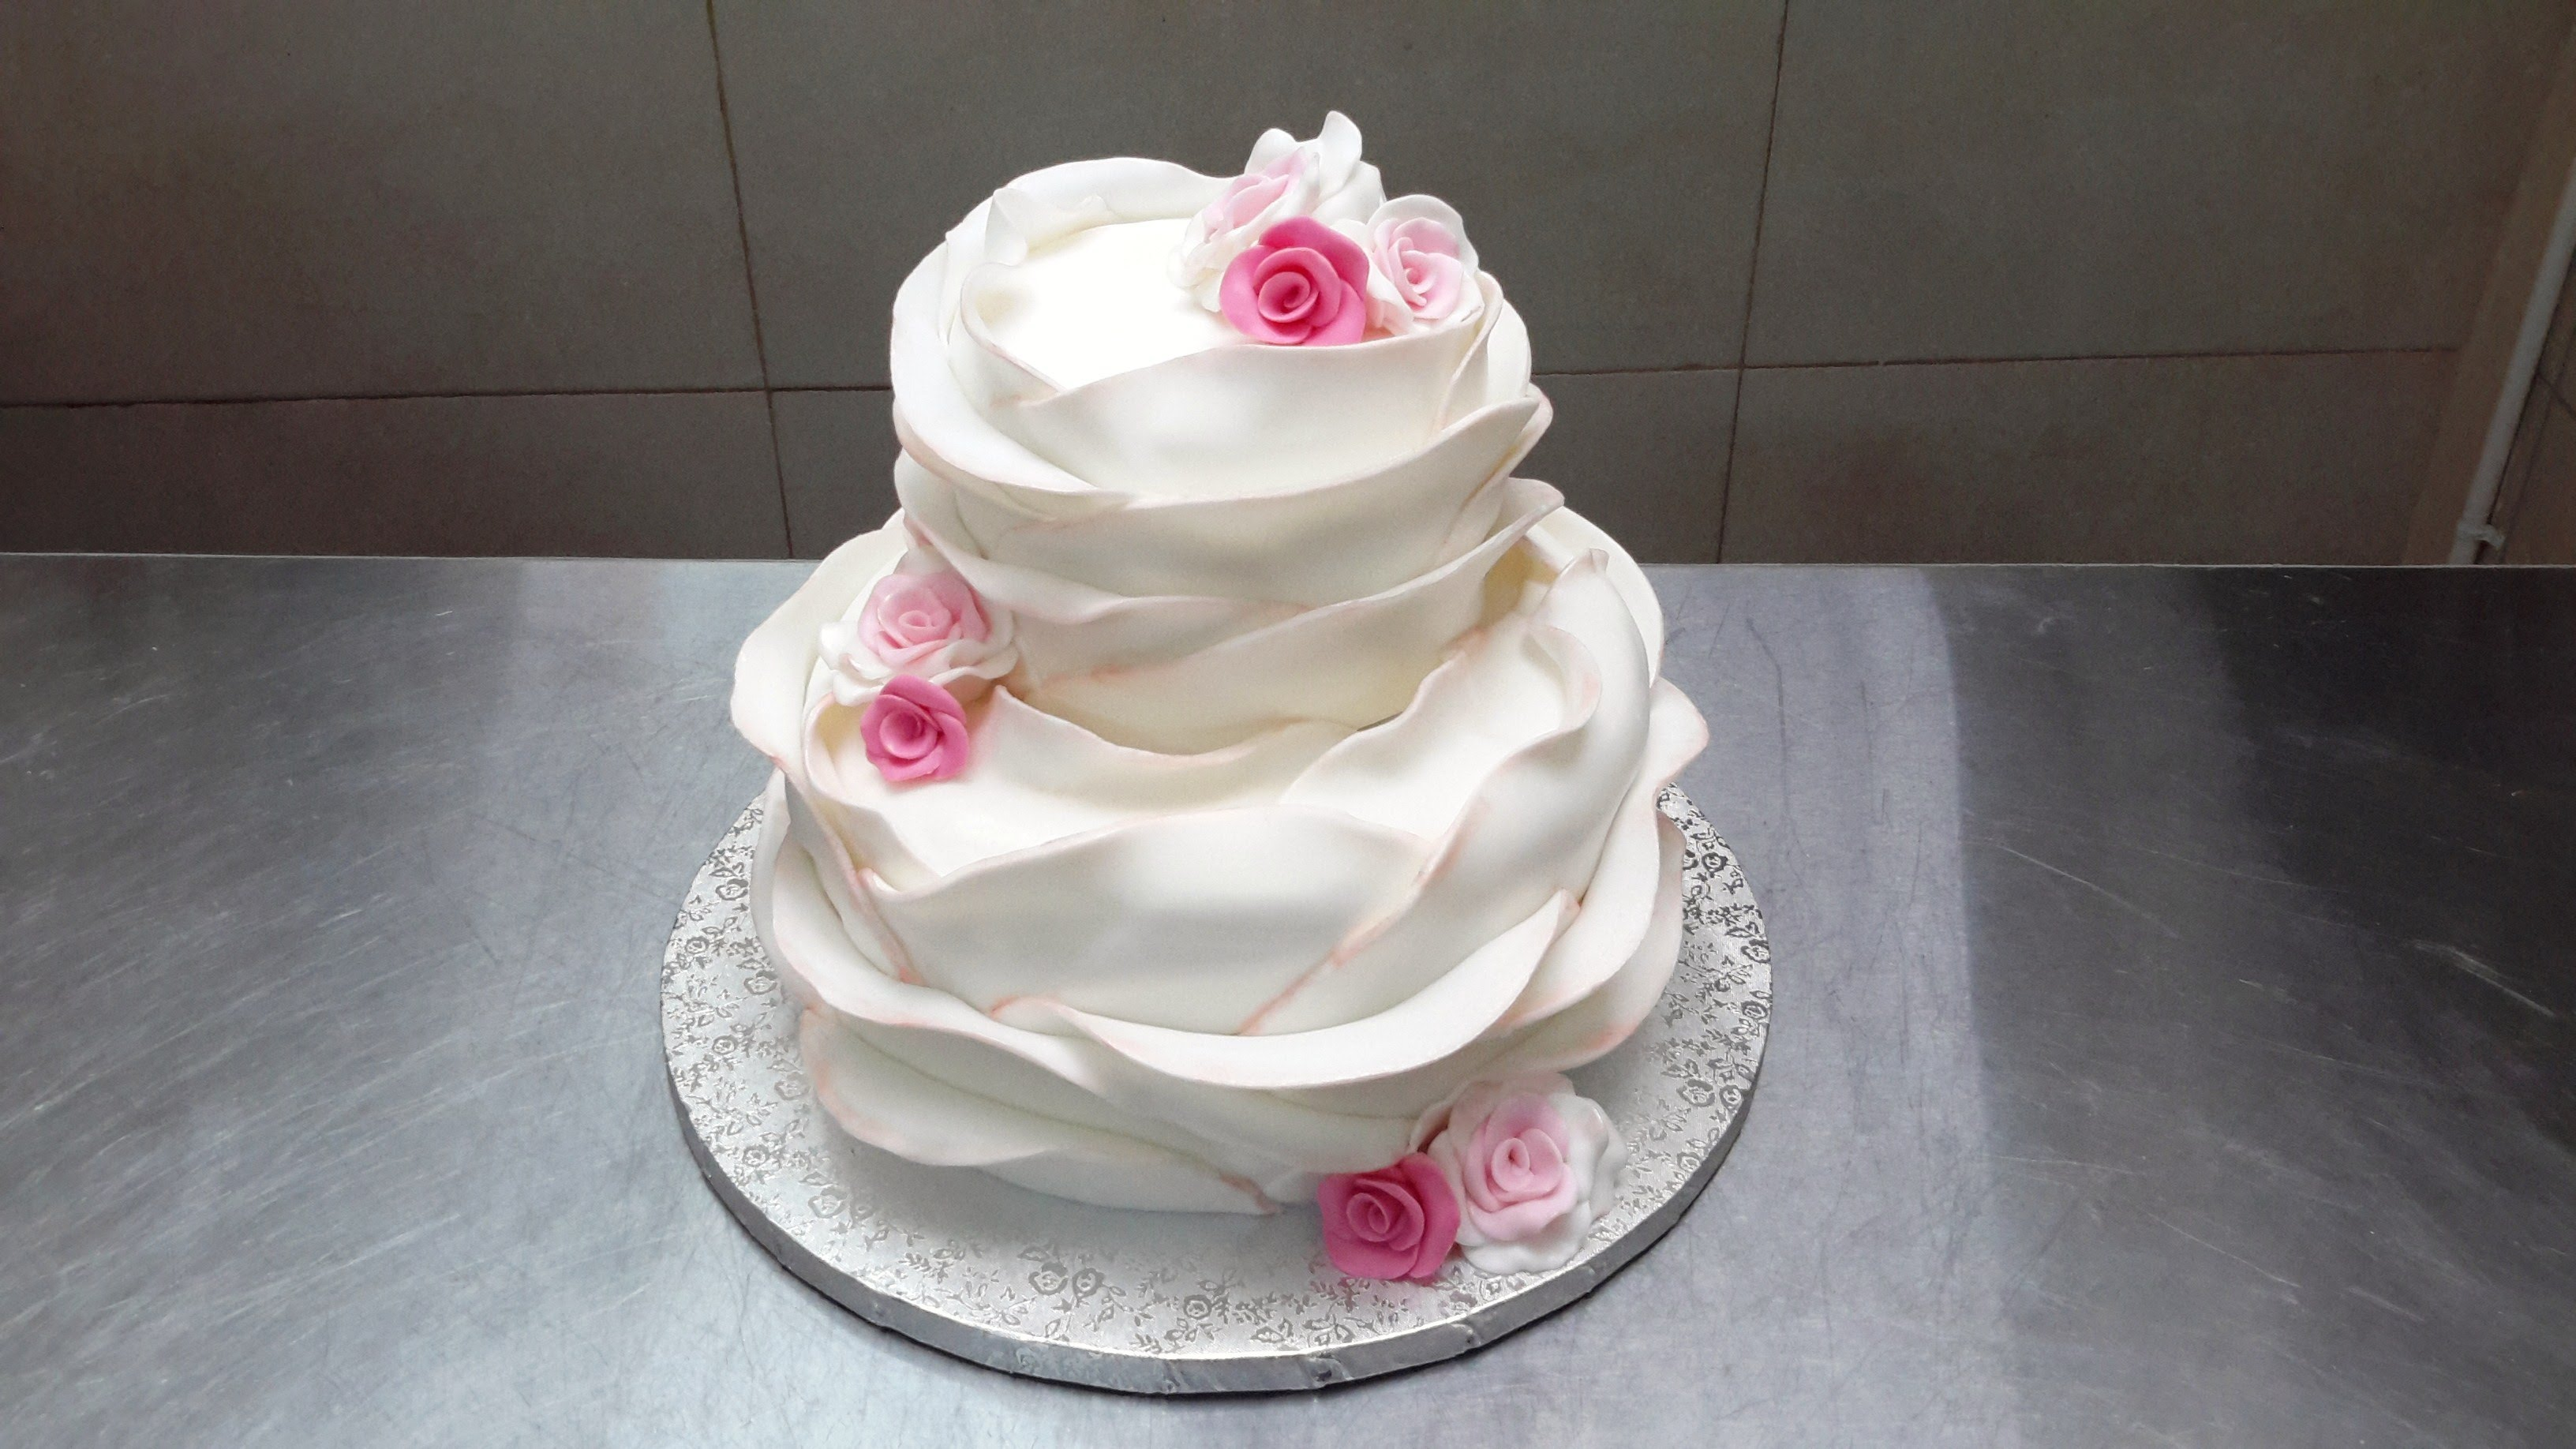 How To Make Fresh Cream Icing For Cakes